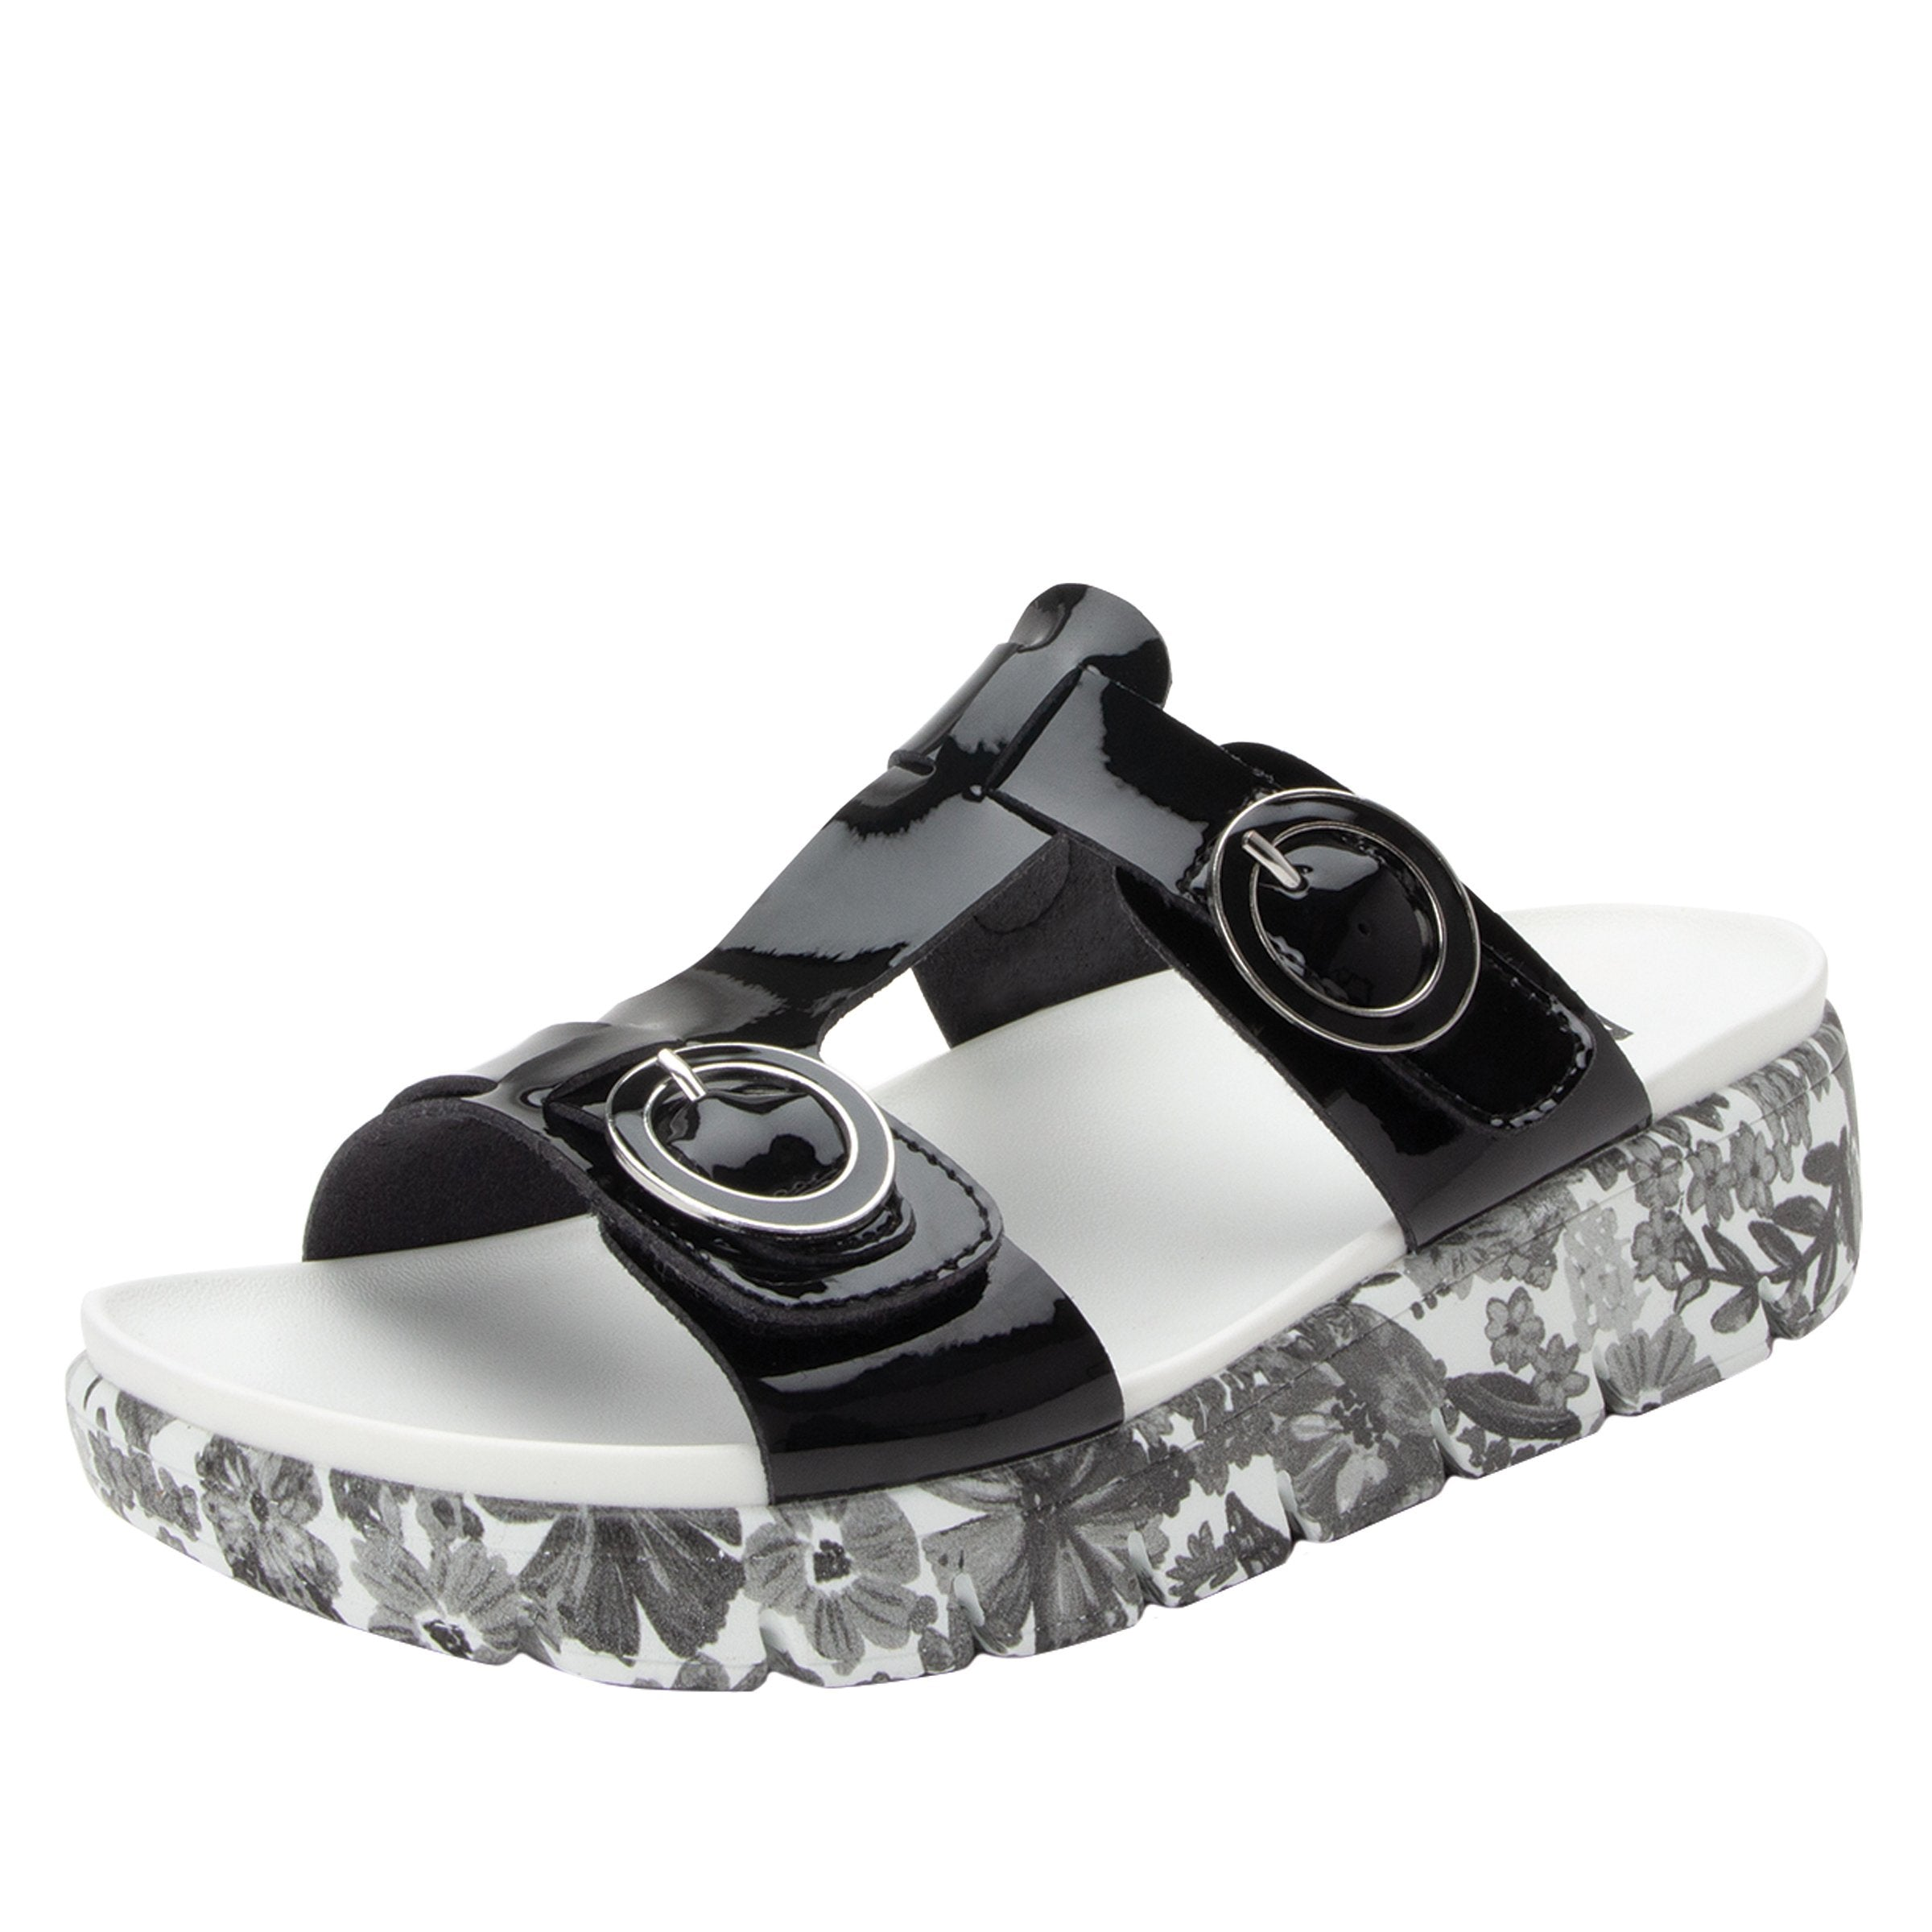 d1d48230868d Vita Oasis Black gladiator inspired sandal with two connected hook and loop  adjustable straps - VIT